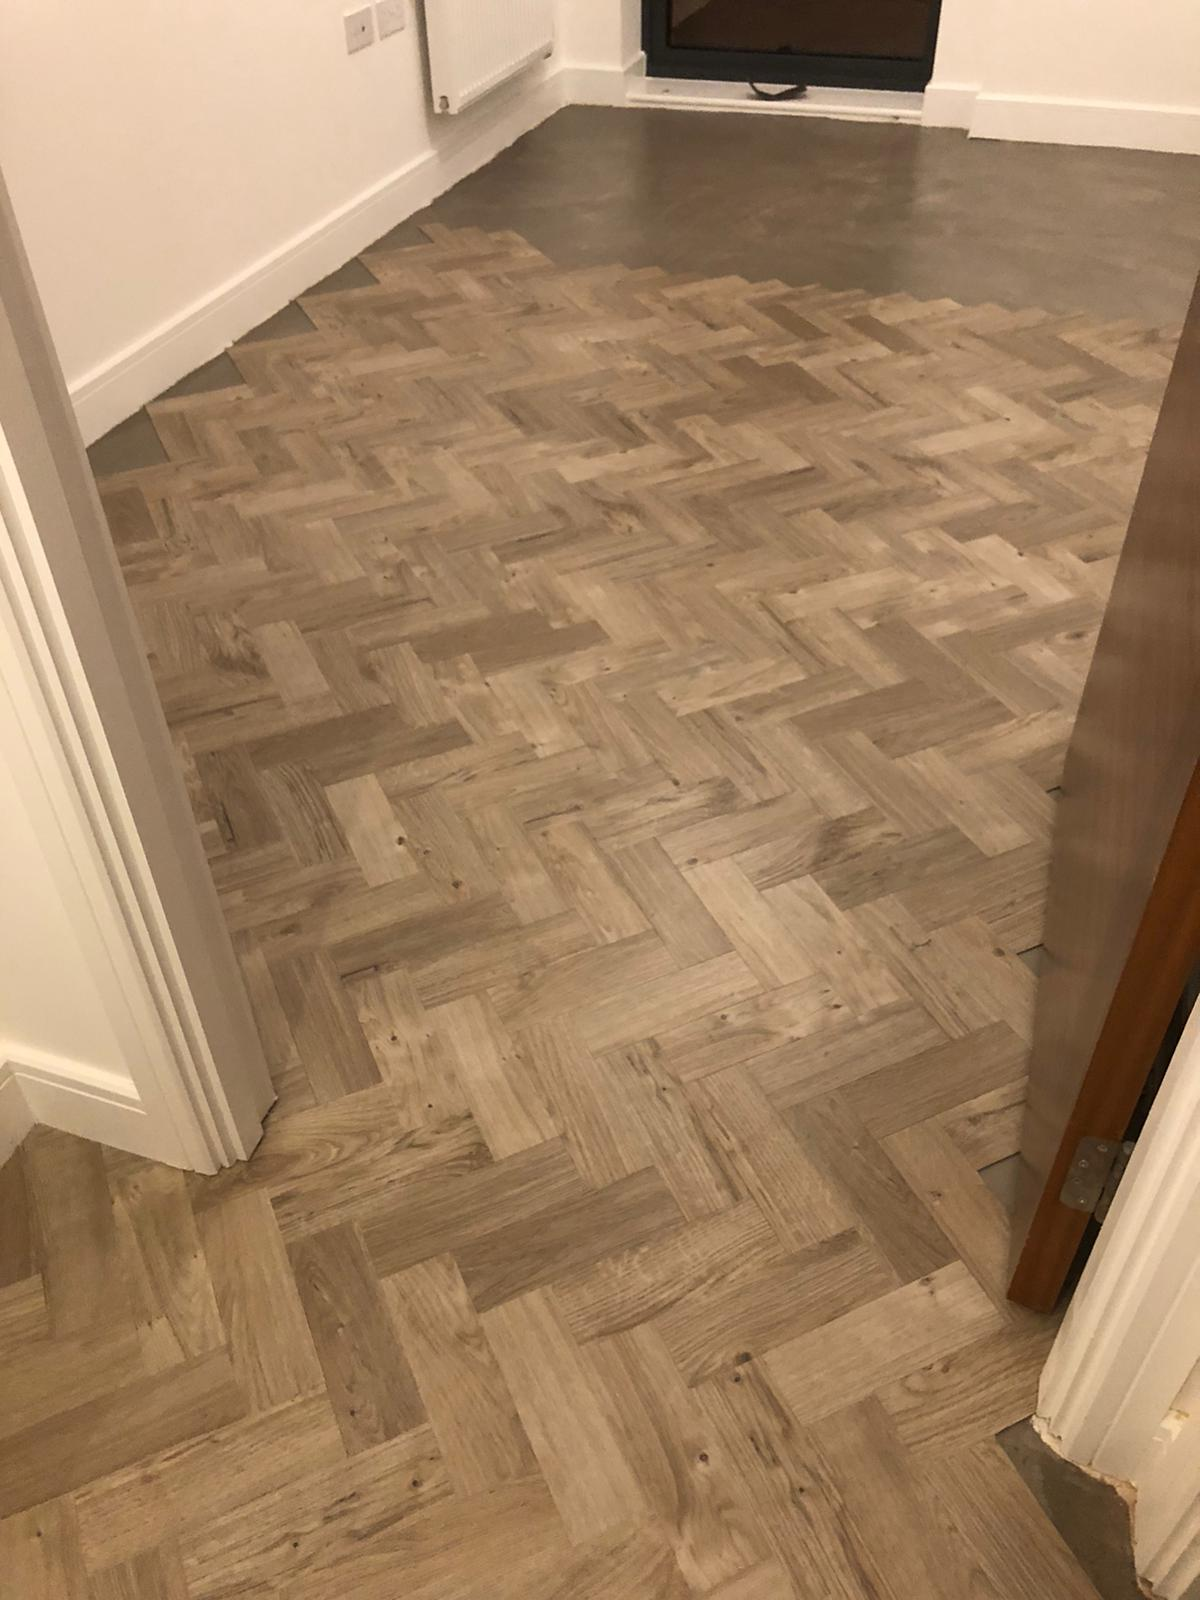 To supply & install Amtico Spacia Sun Bleached Oak luxury vinyl flooring in Kilburn 7